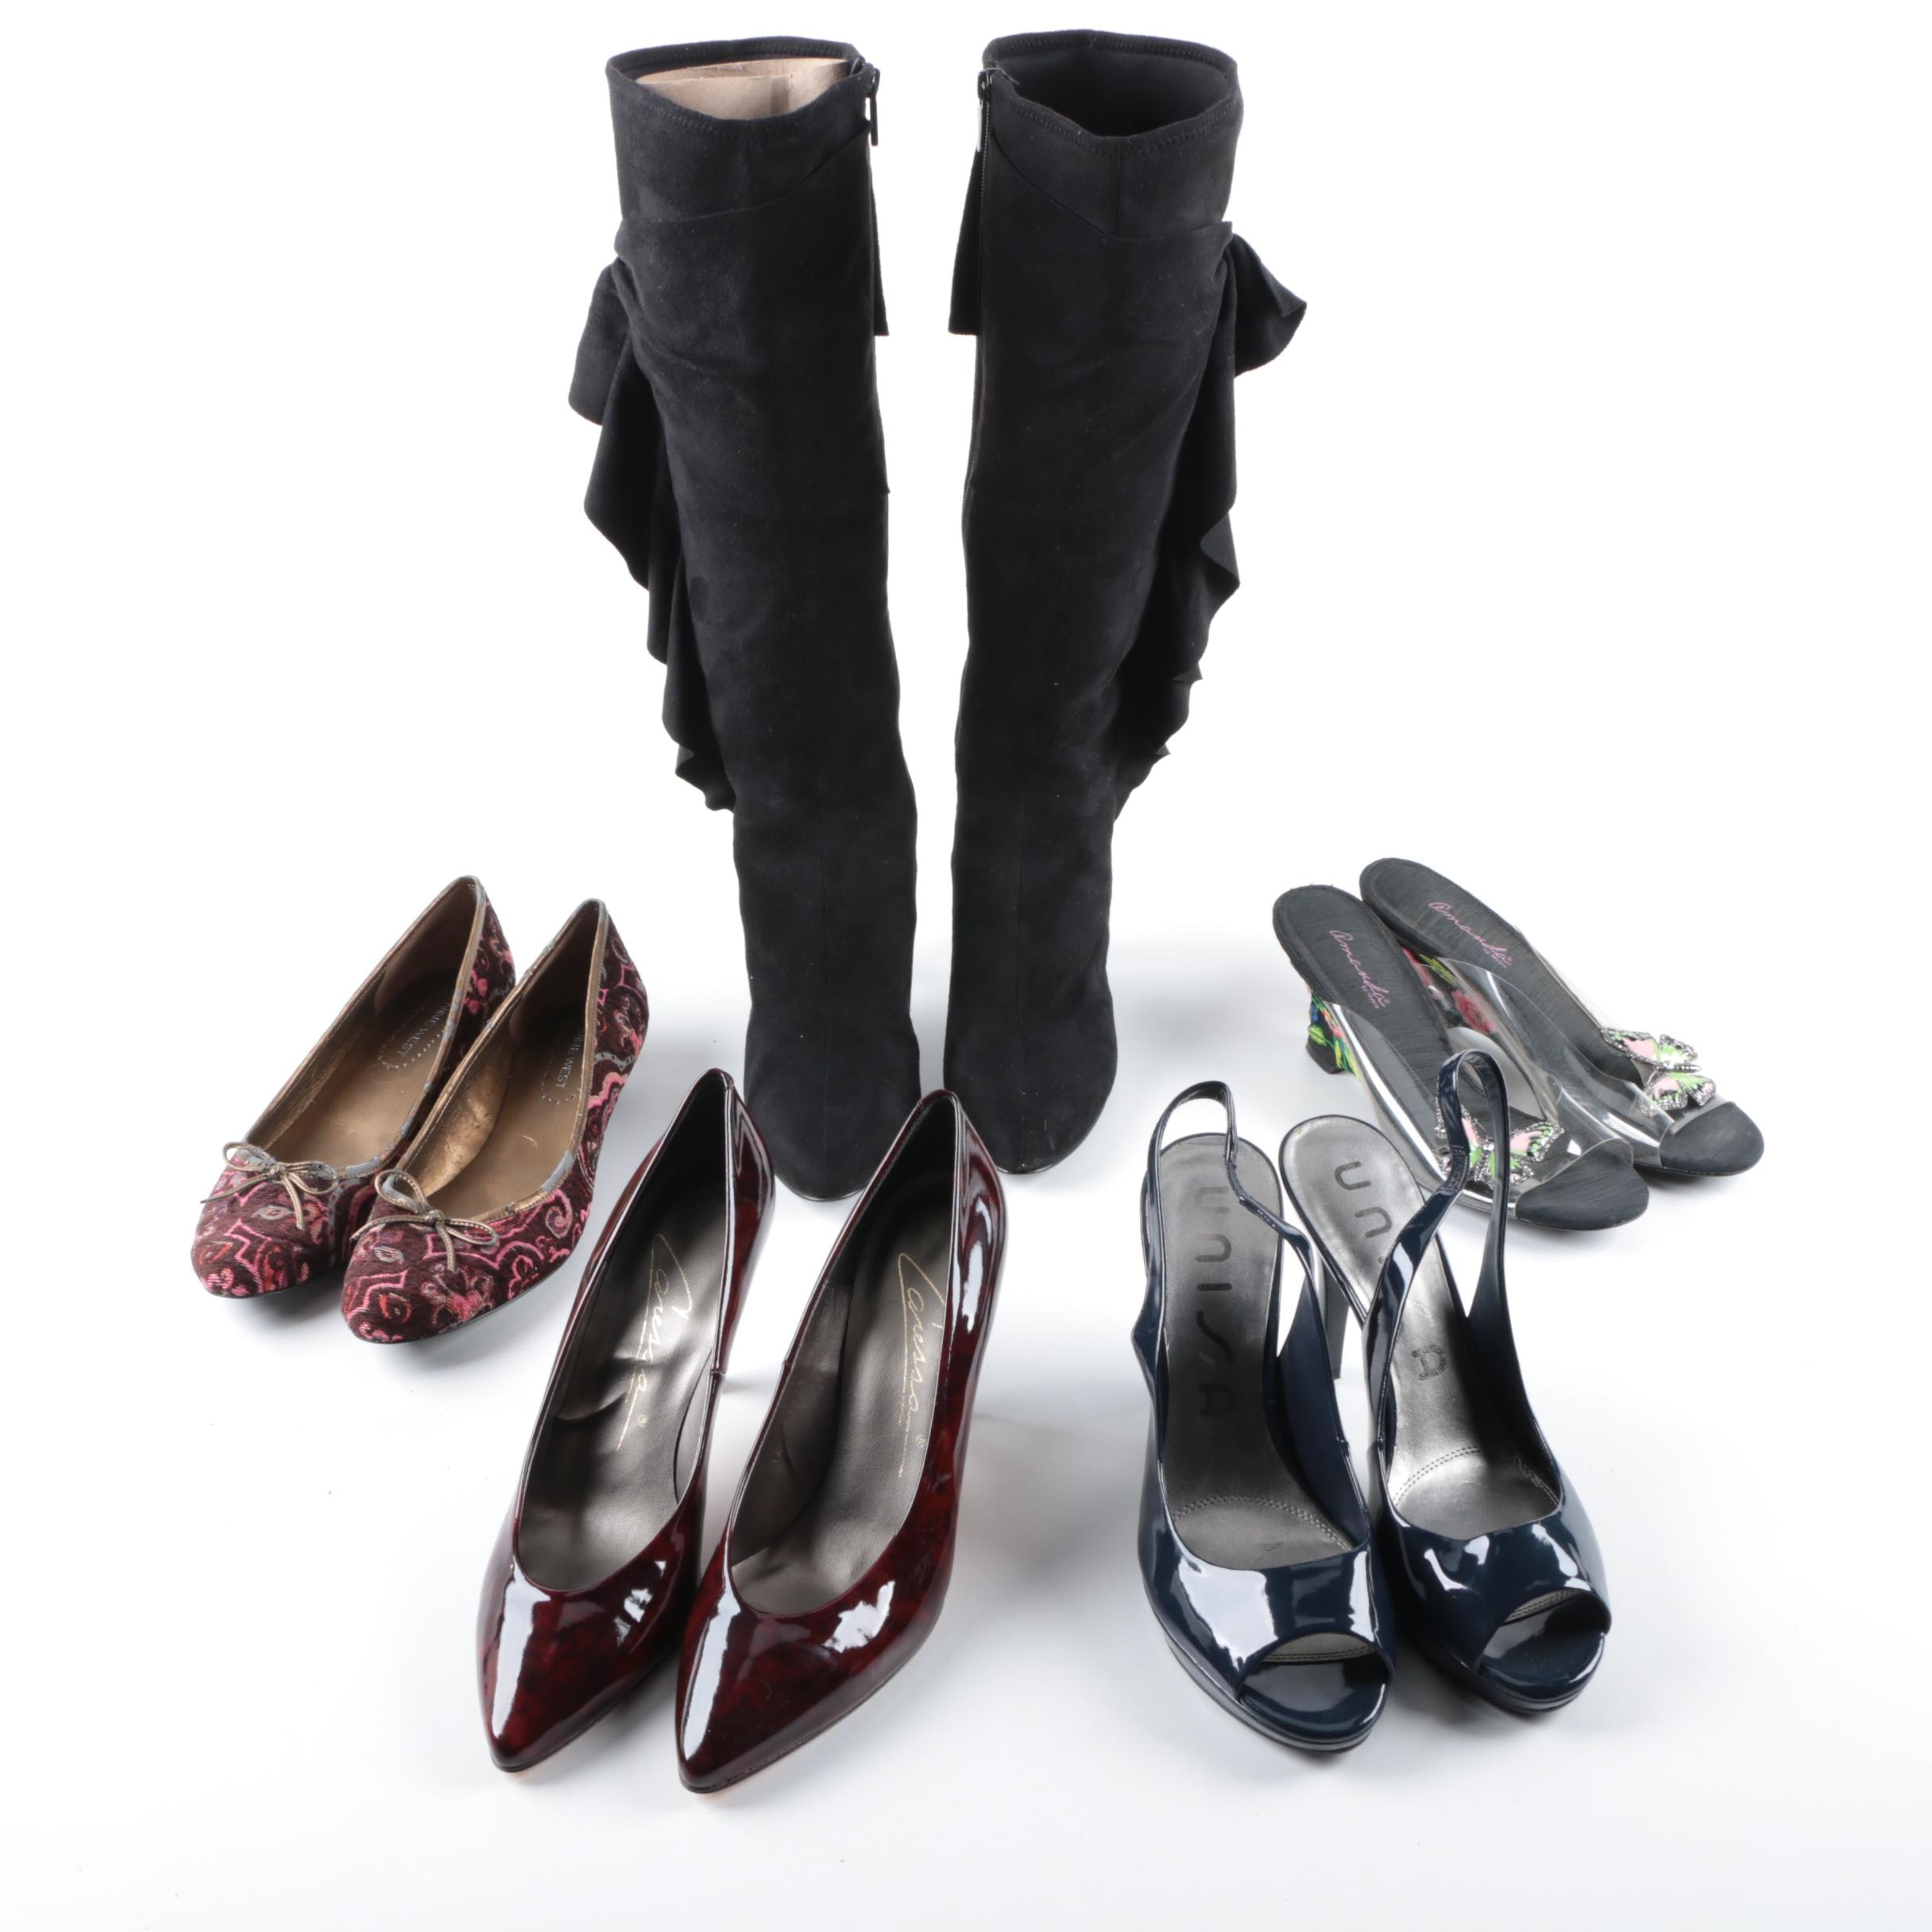 Women's Boots, Heels, and Wedges